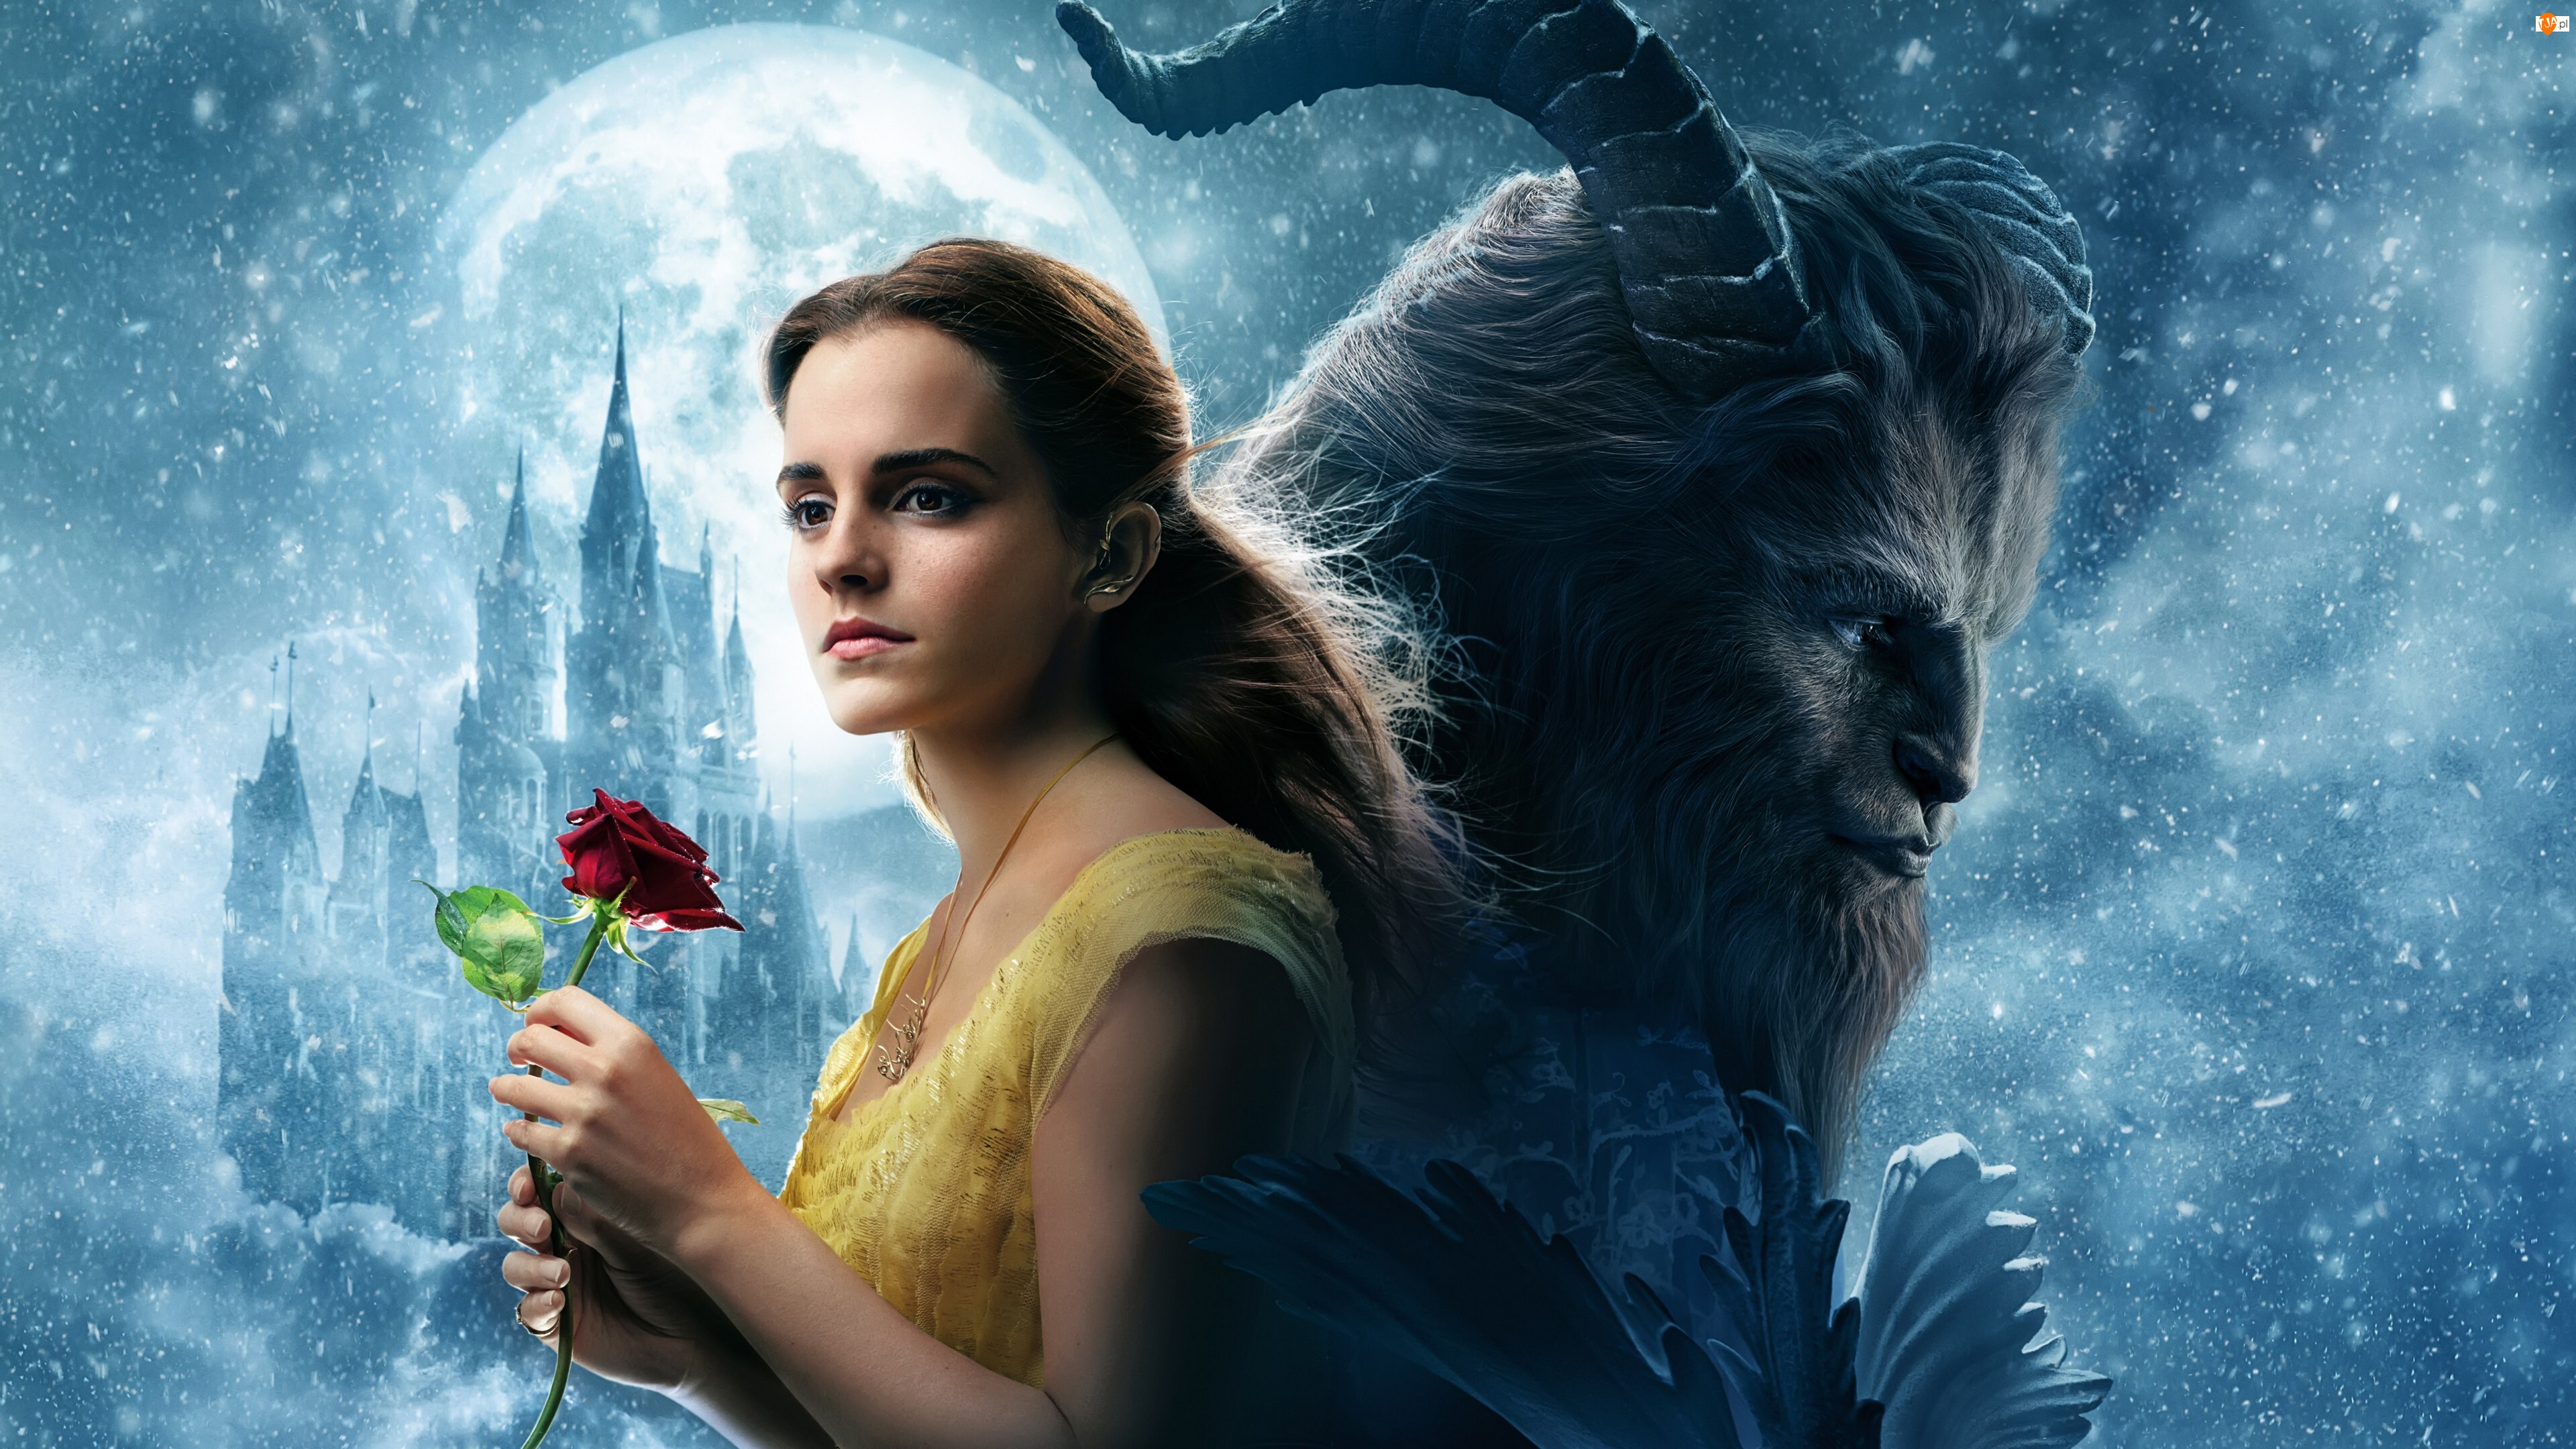 Beauty and the Beast, Emma Watson, Piękna i Bestia, Film, Aktorka